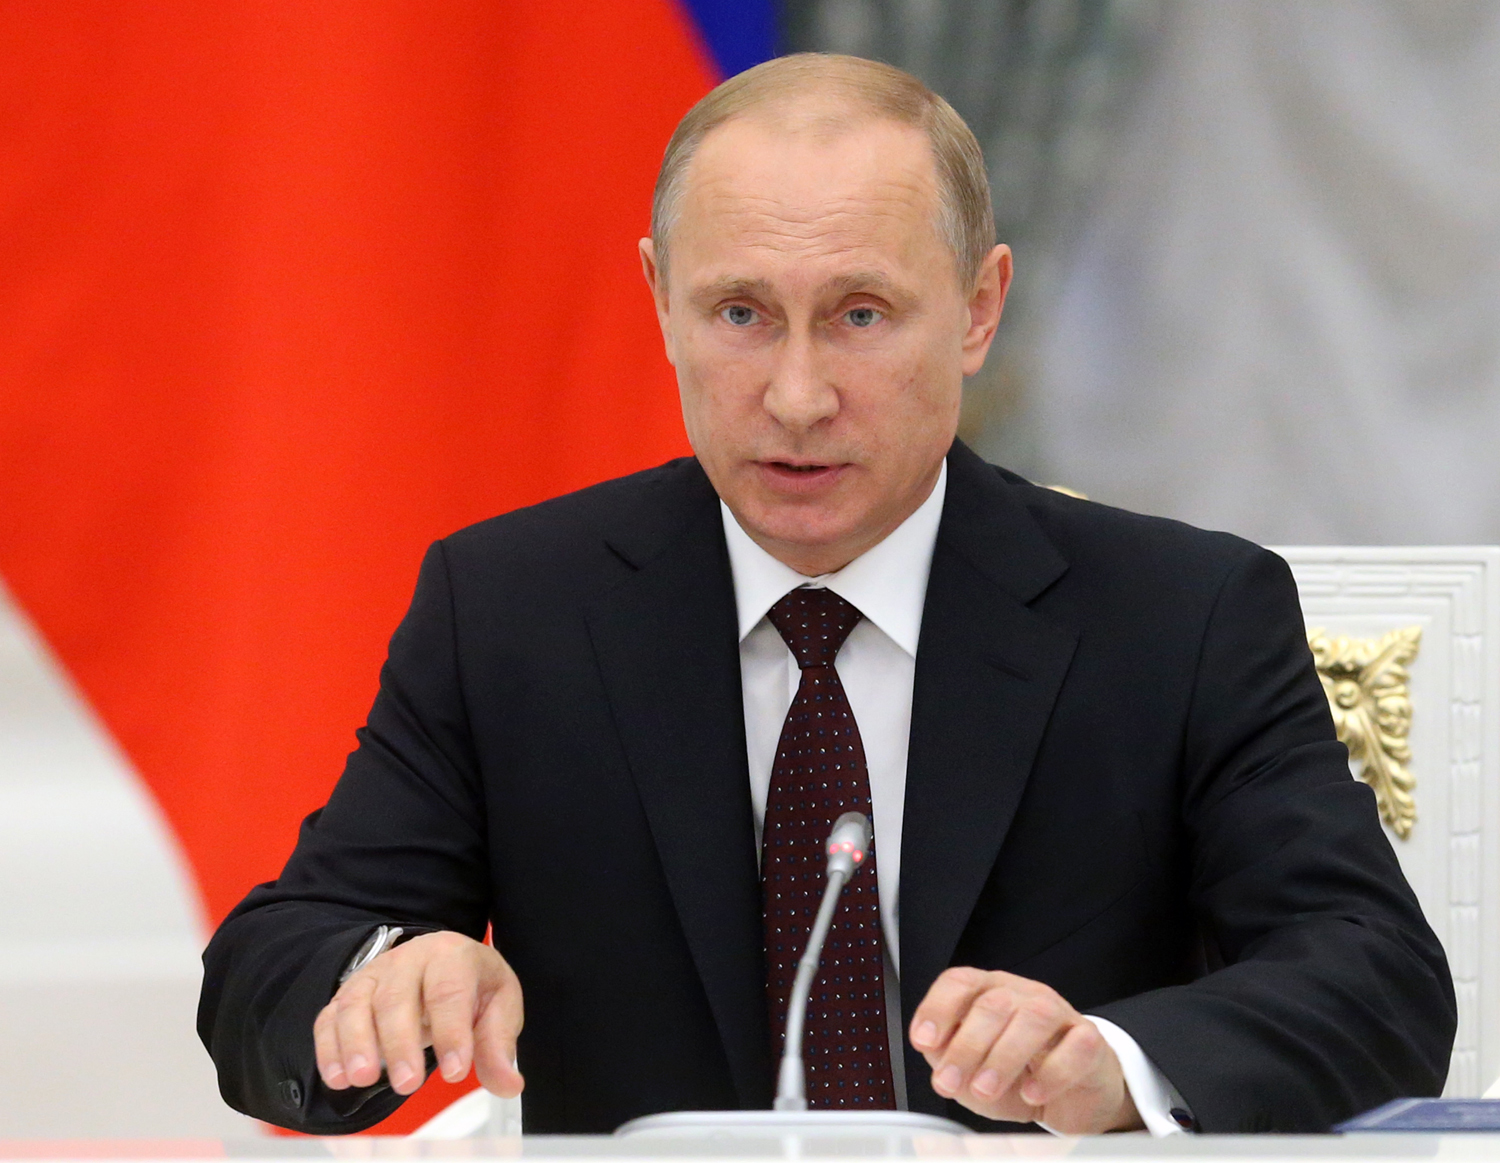 Russian President Vladimir Putin speeches during a meeting of the Coordination Council on Implementing the National Children's Strategy for 2012-2014, in the Kremlin on May 27, 2014.